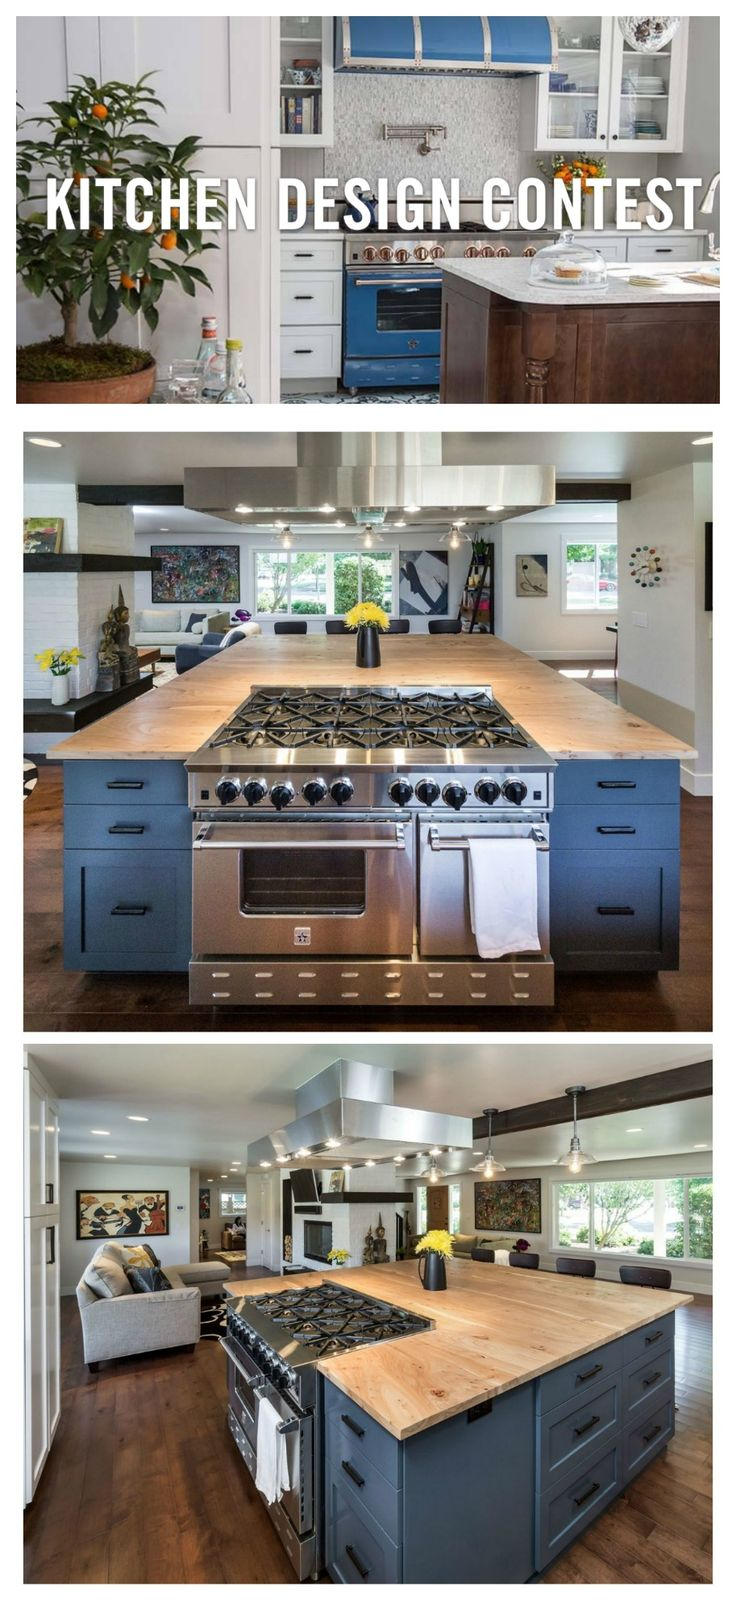 BlueStar® is back with our 2nd Annual Kitchen Design Contest! We are looking for professional kitchen designers, architects, interior designers, builders and remodelers to send us their incredible work. Will you win in 2016? Submit your beautiful kitchens* for the chance to win the title of BlueStar® Kitchen Designer of the Year.